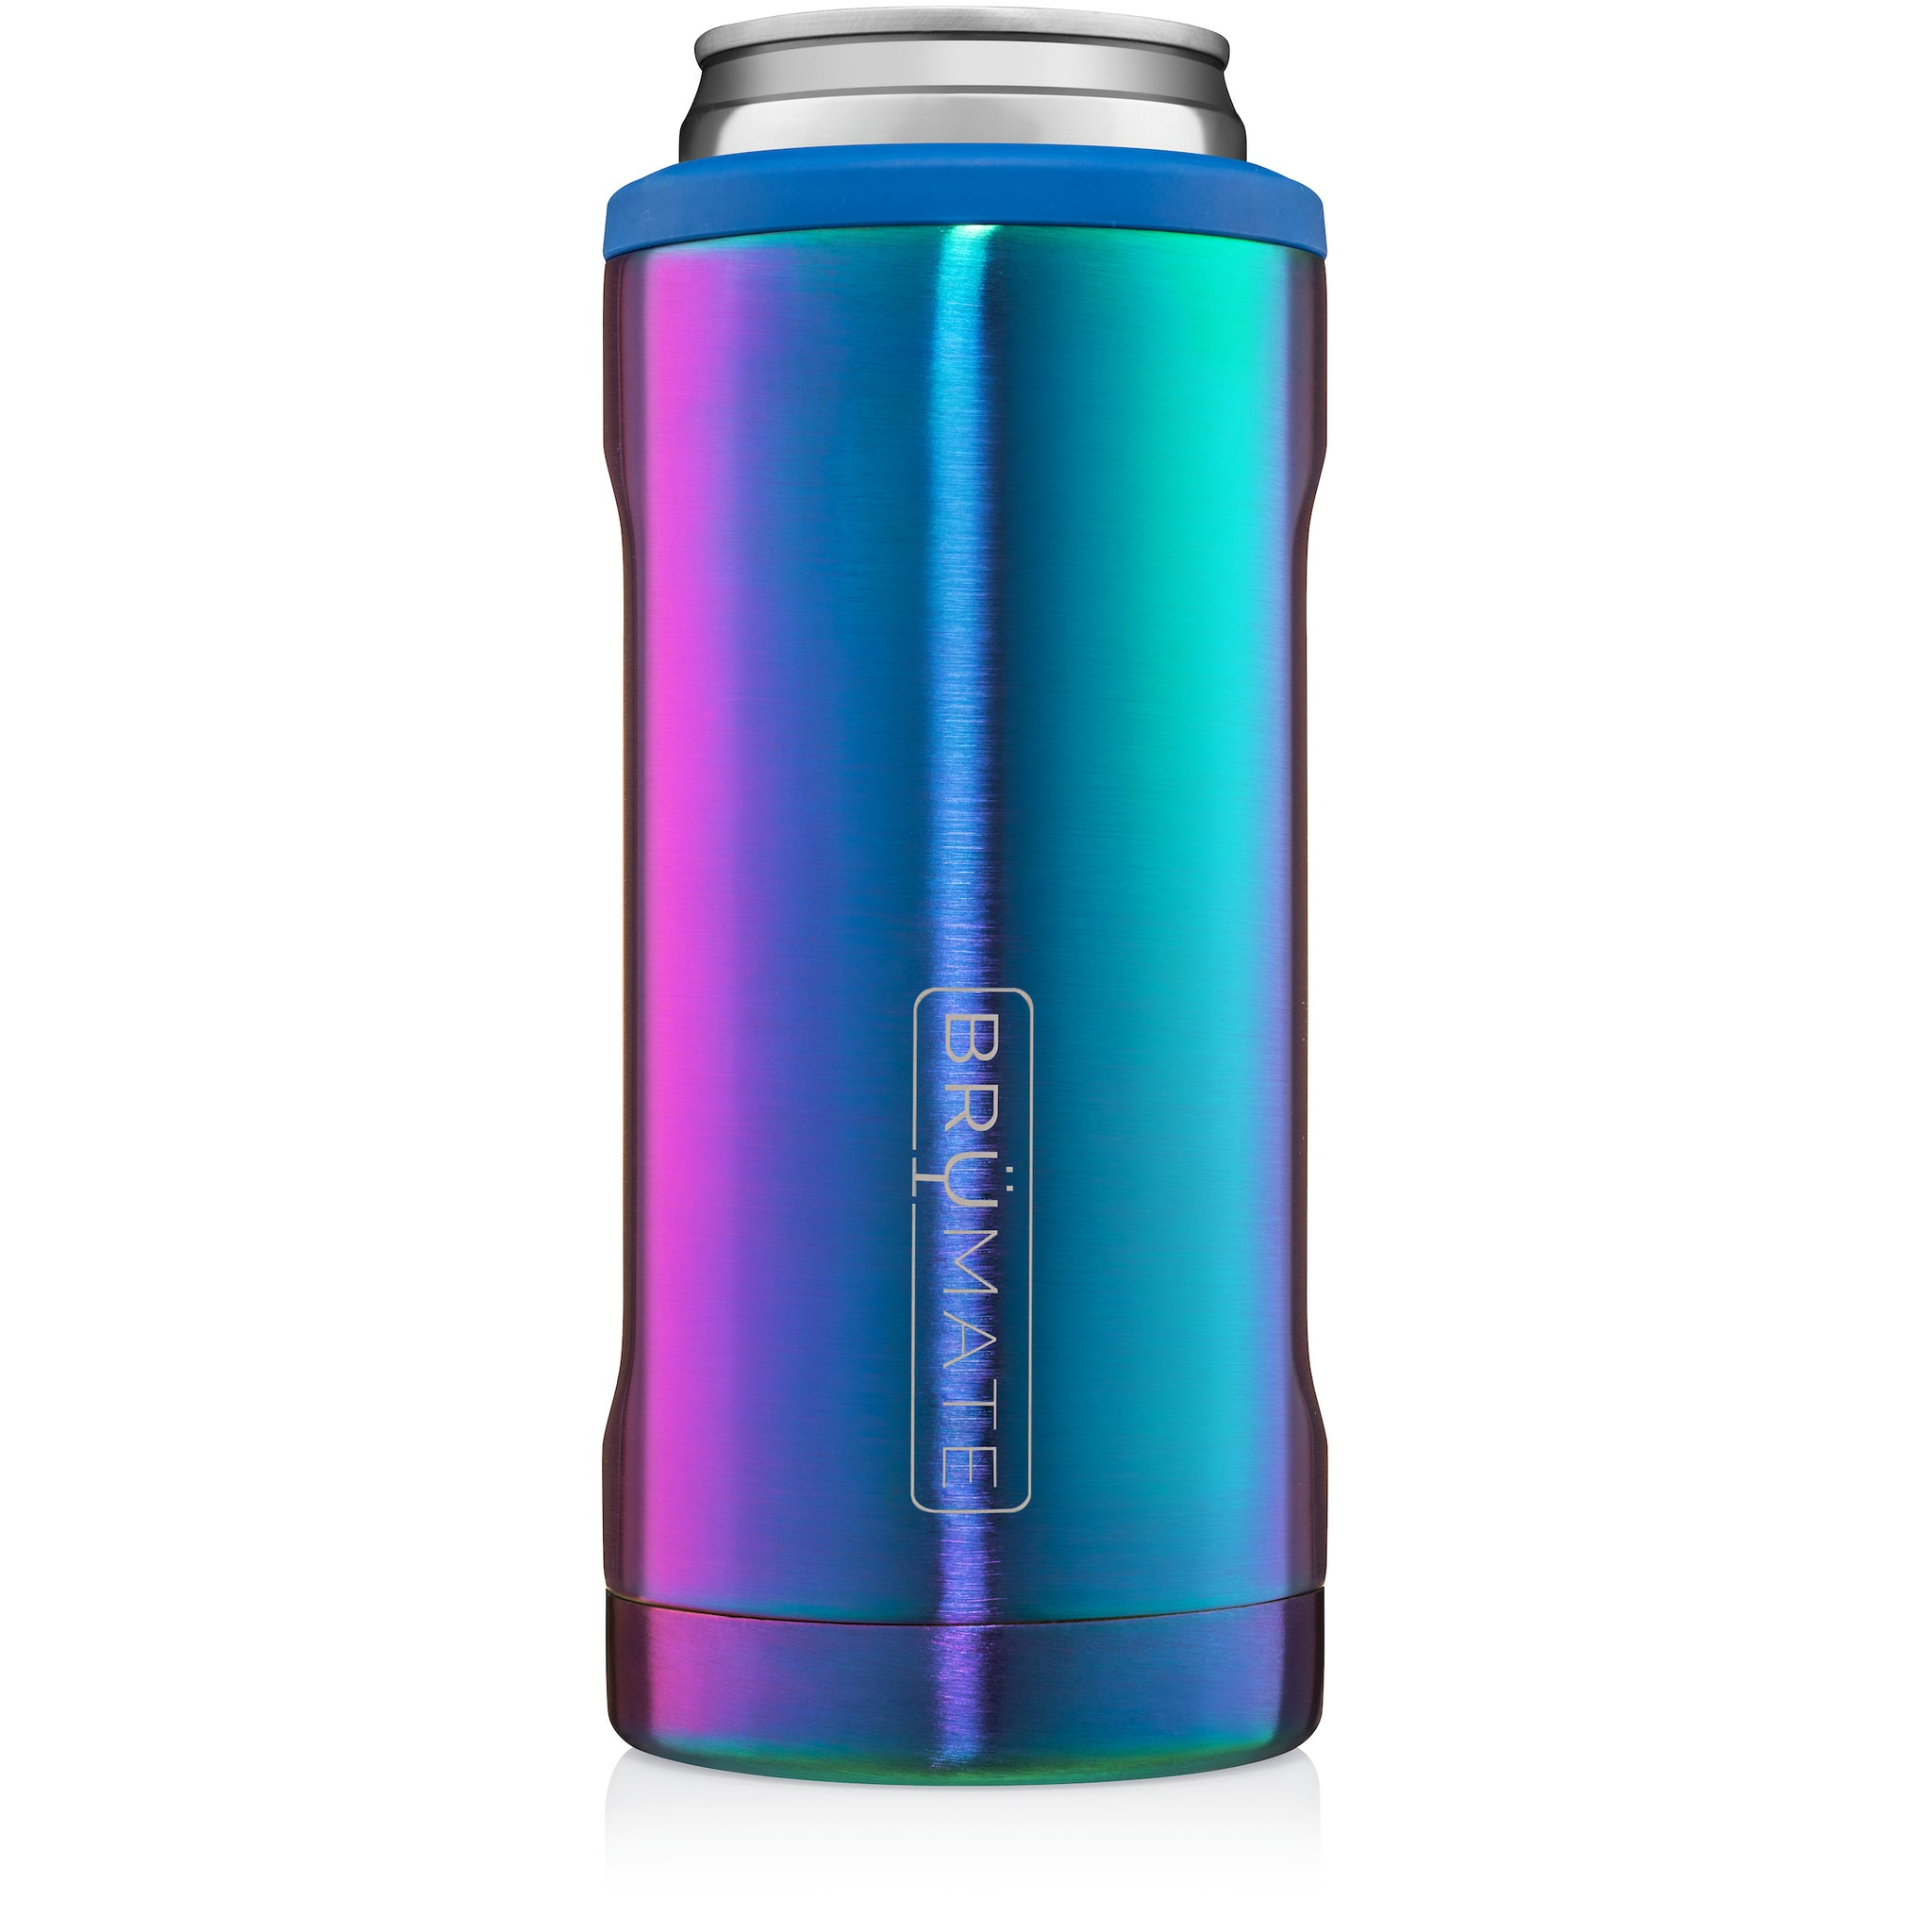 (PRE-ORDER, SHIPS 08/07) Hopsulator Slim | Rainbow Titanium (12oz slim cans) (LIMITED EDITION)